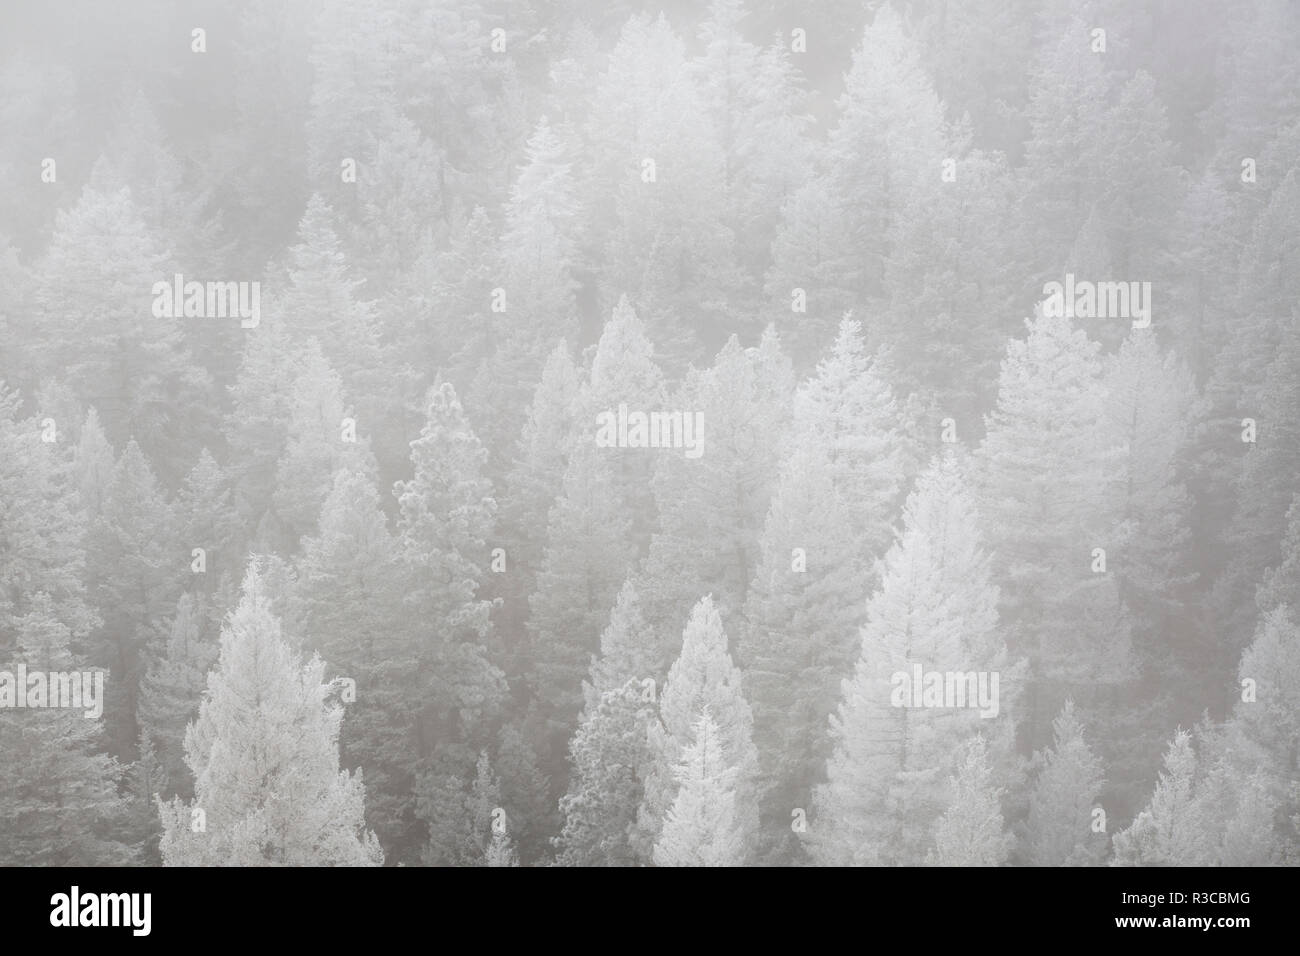 USA, Colorado, Pike National Forest. Hoarfrost and fog in winter forest. - Stock Image